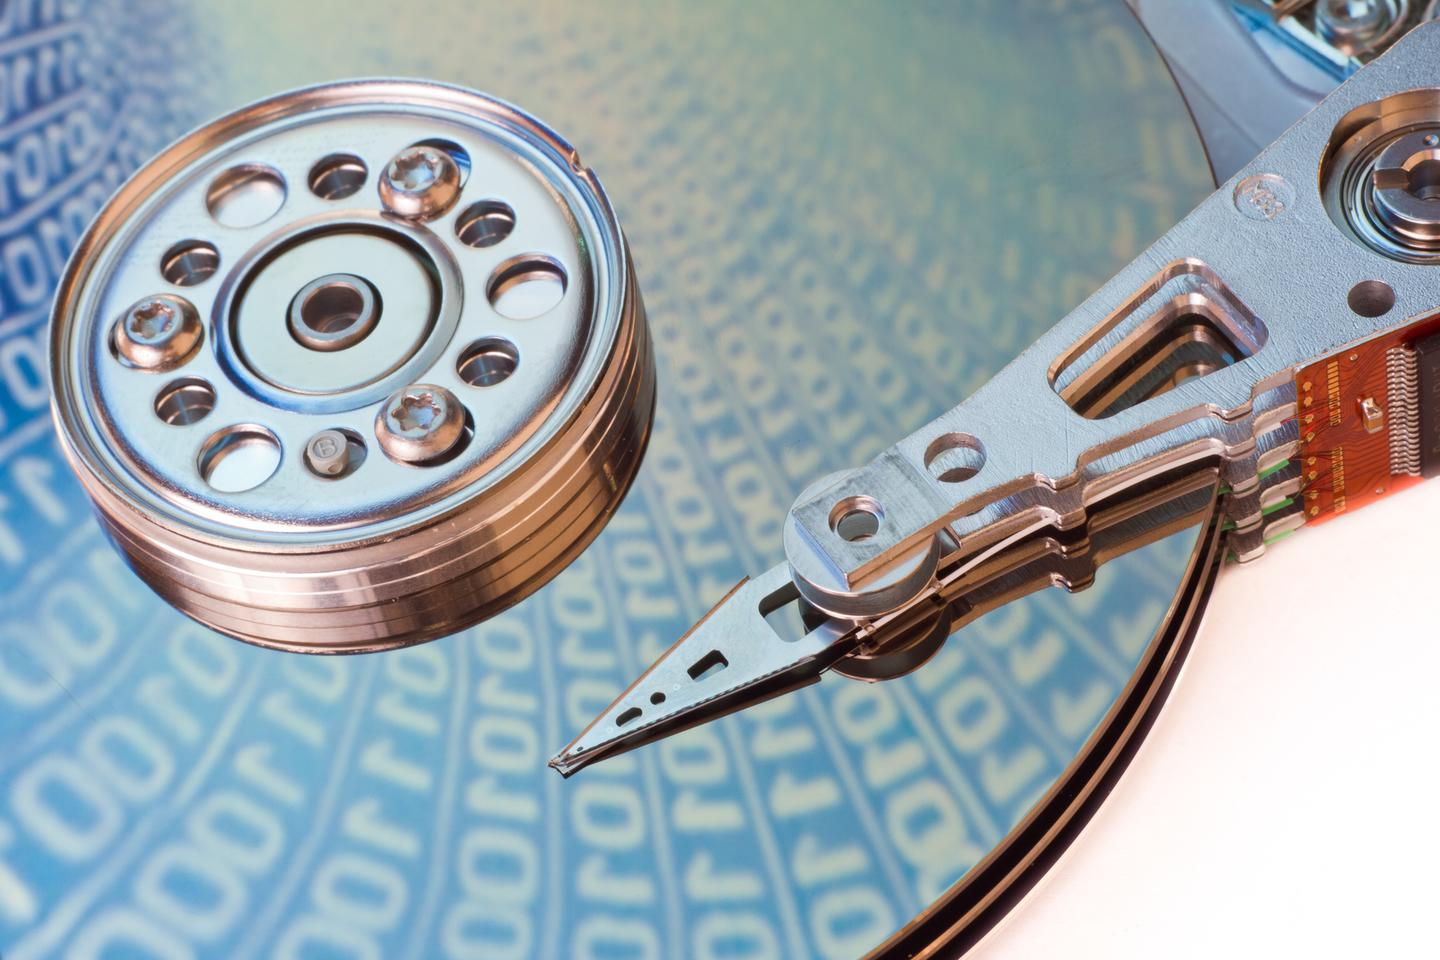 Researchers have used graphene to increasing the operating temperature and data density of HDDs